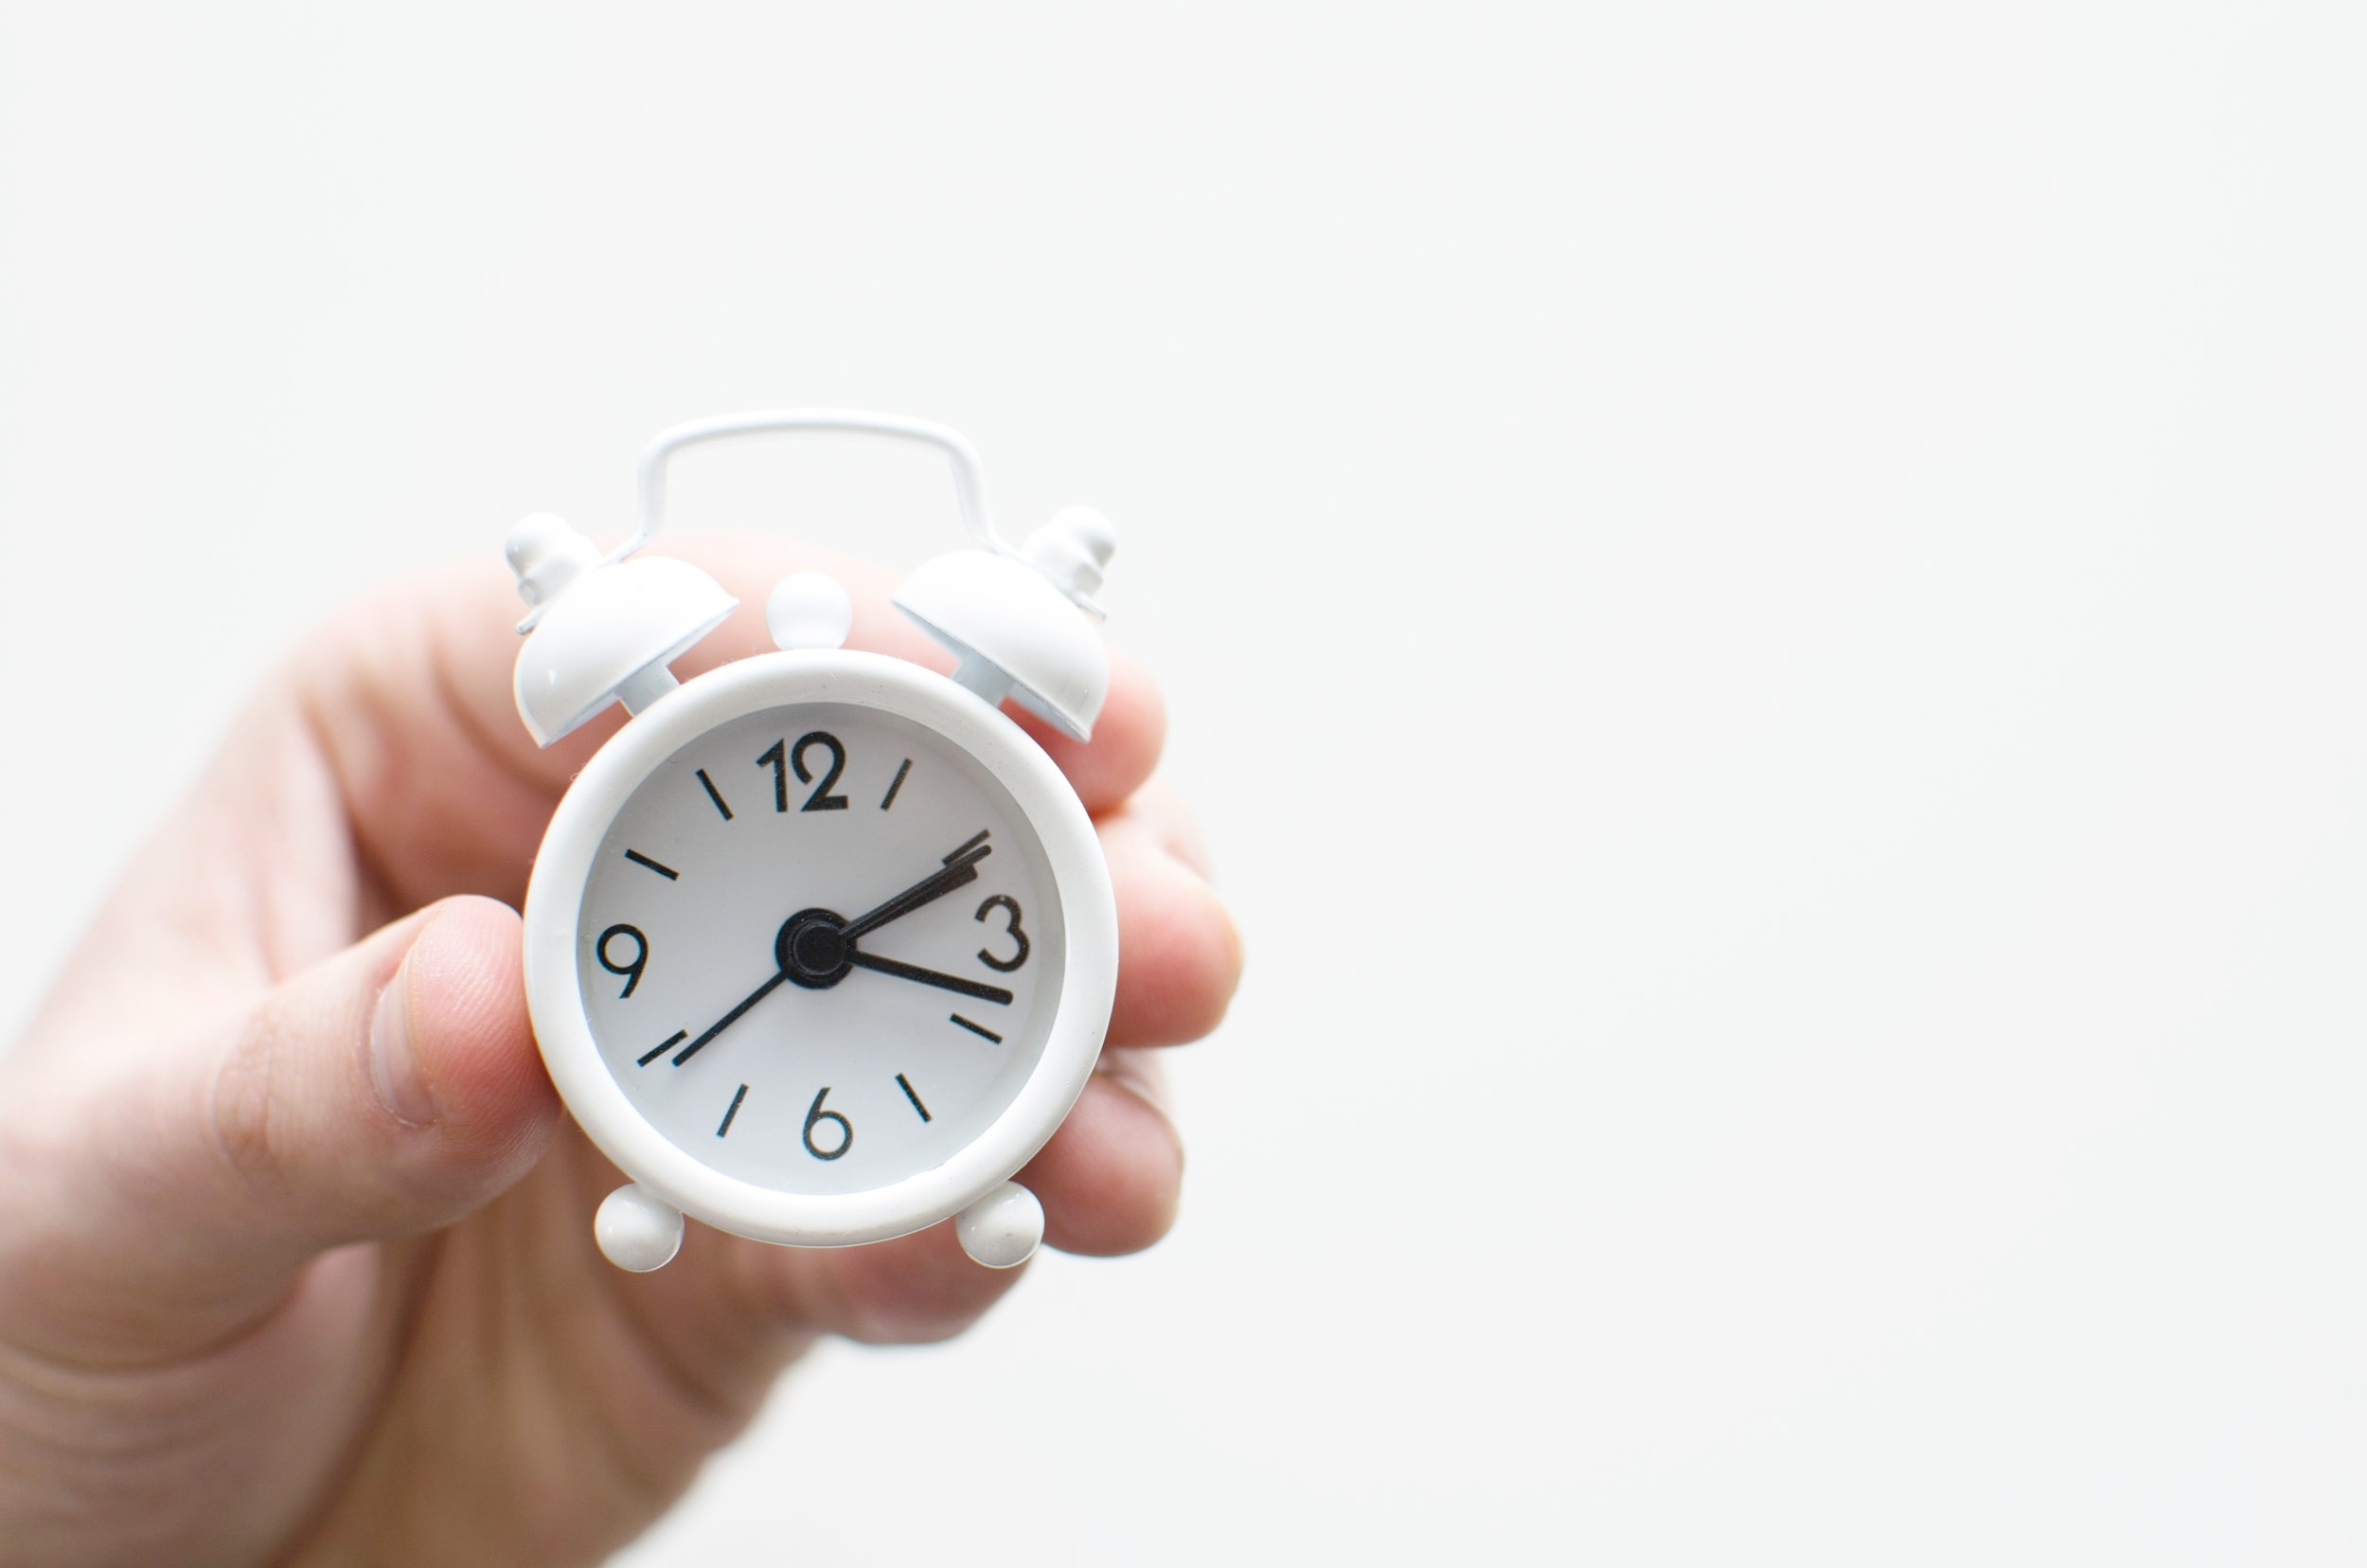 Time - How much time will PM actually take?